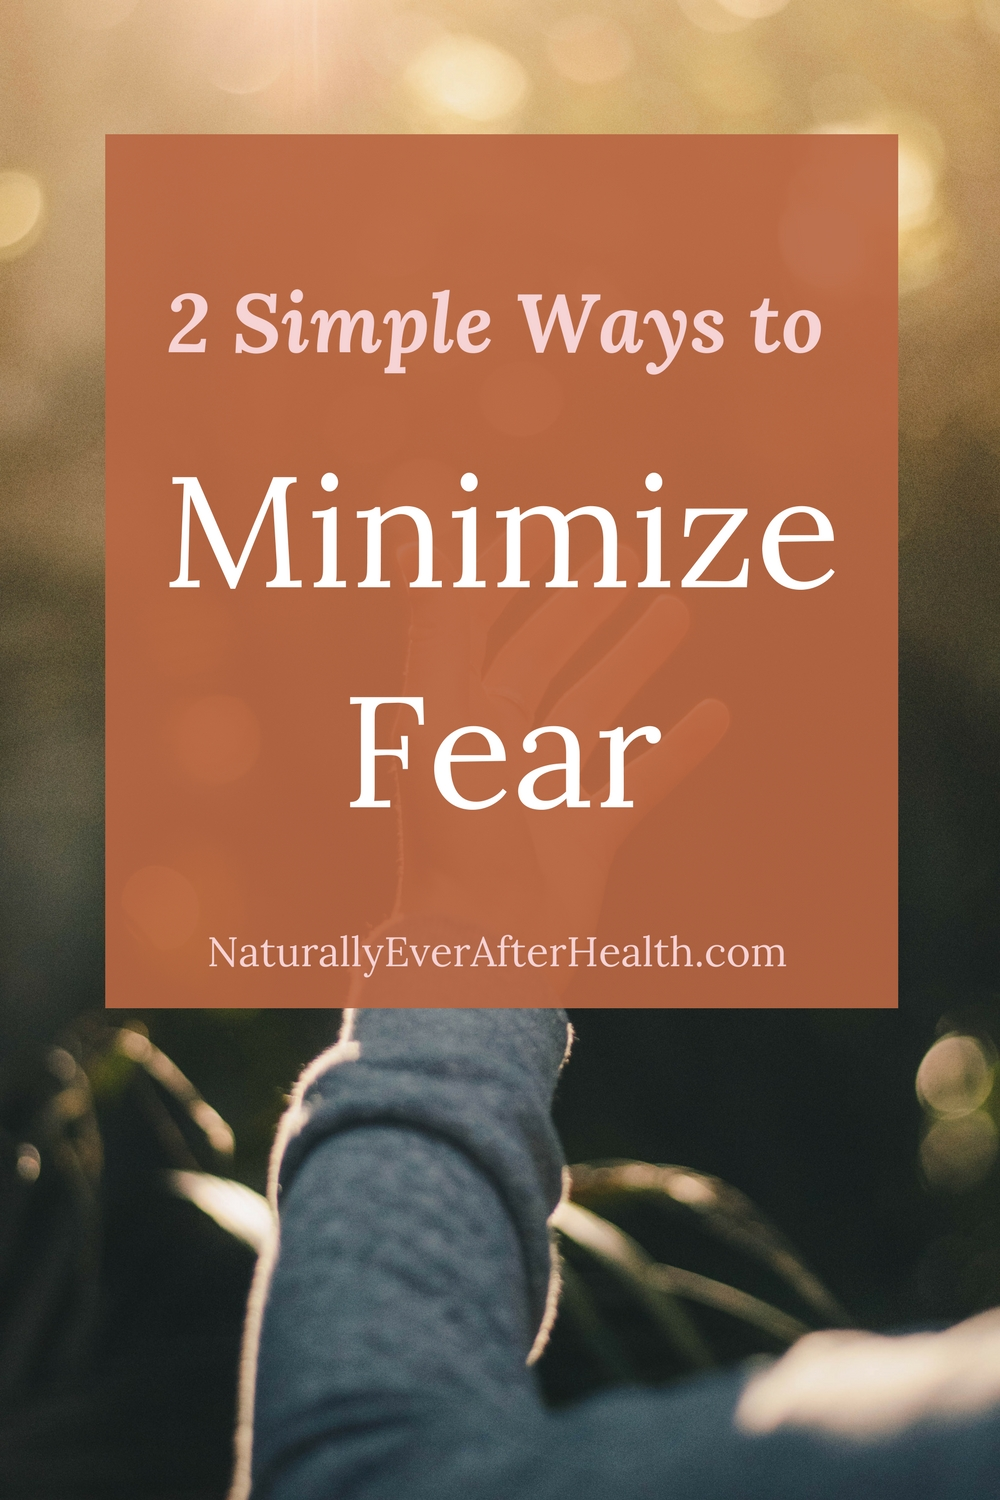 A few thoughts to minimize fear and anxiety around the things we cannot control